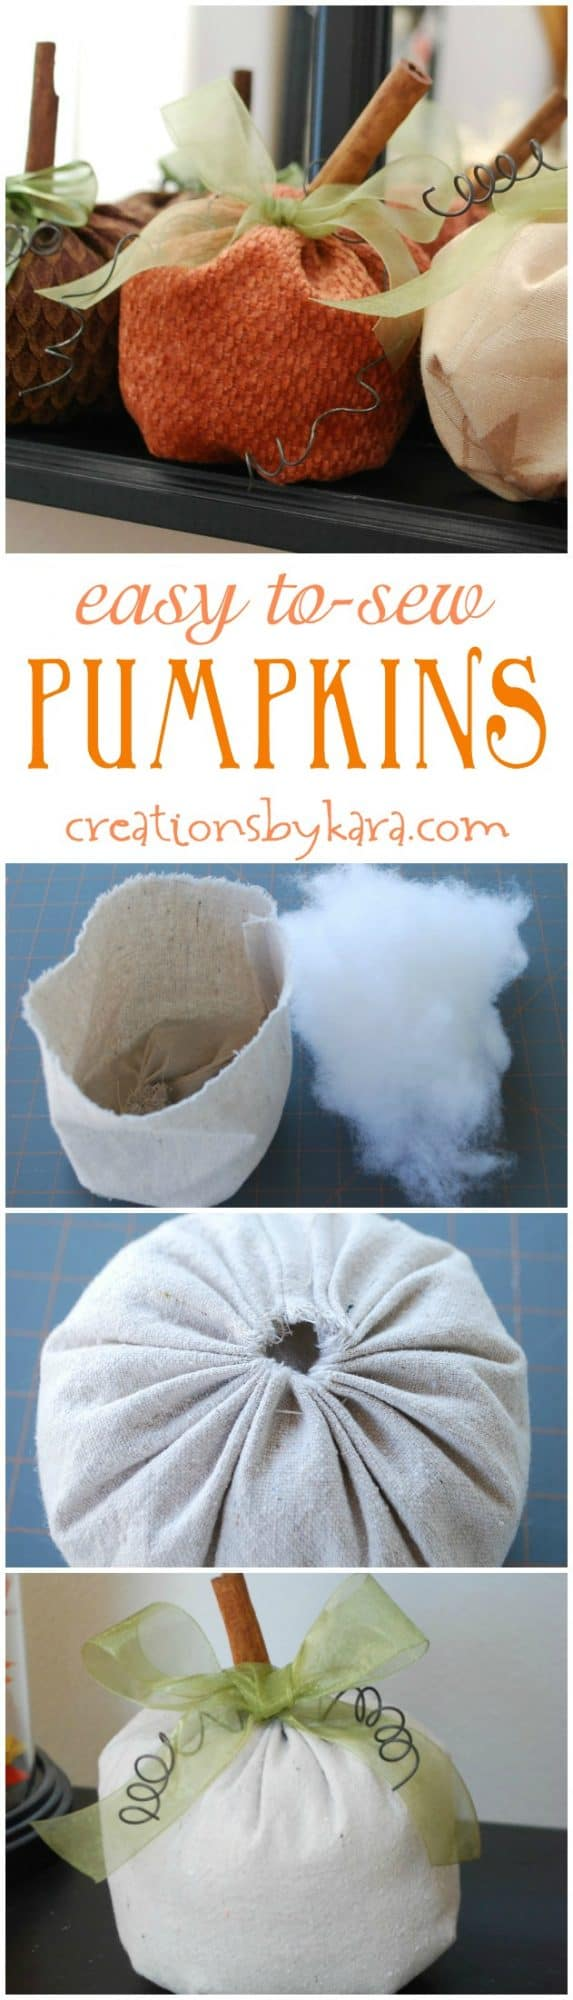 These easy to sew pumpkins can be whipped up in under an hour!